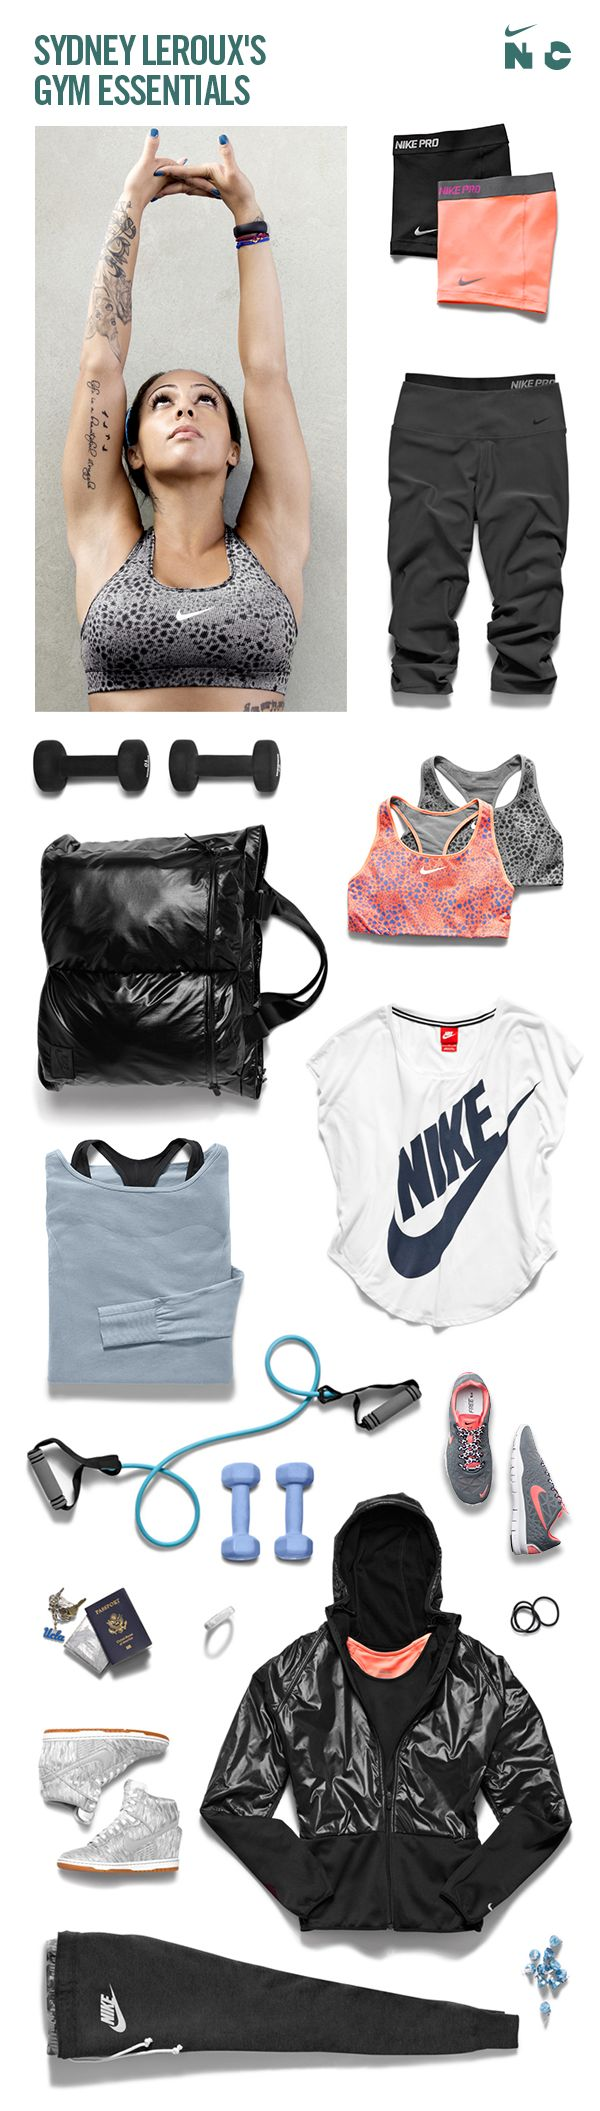 Sydney Leroux's workout favorites. AKA Wish I was rich enough for more Nike products to find their way into my closet...